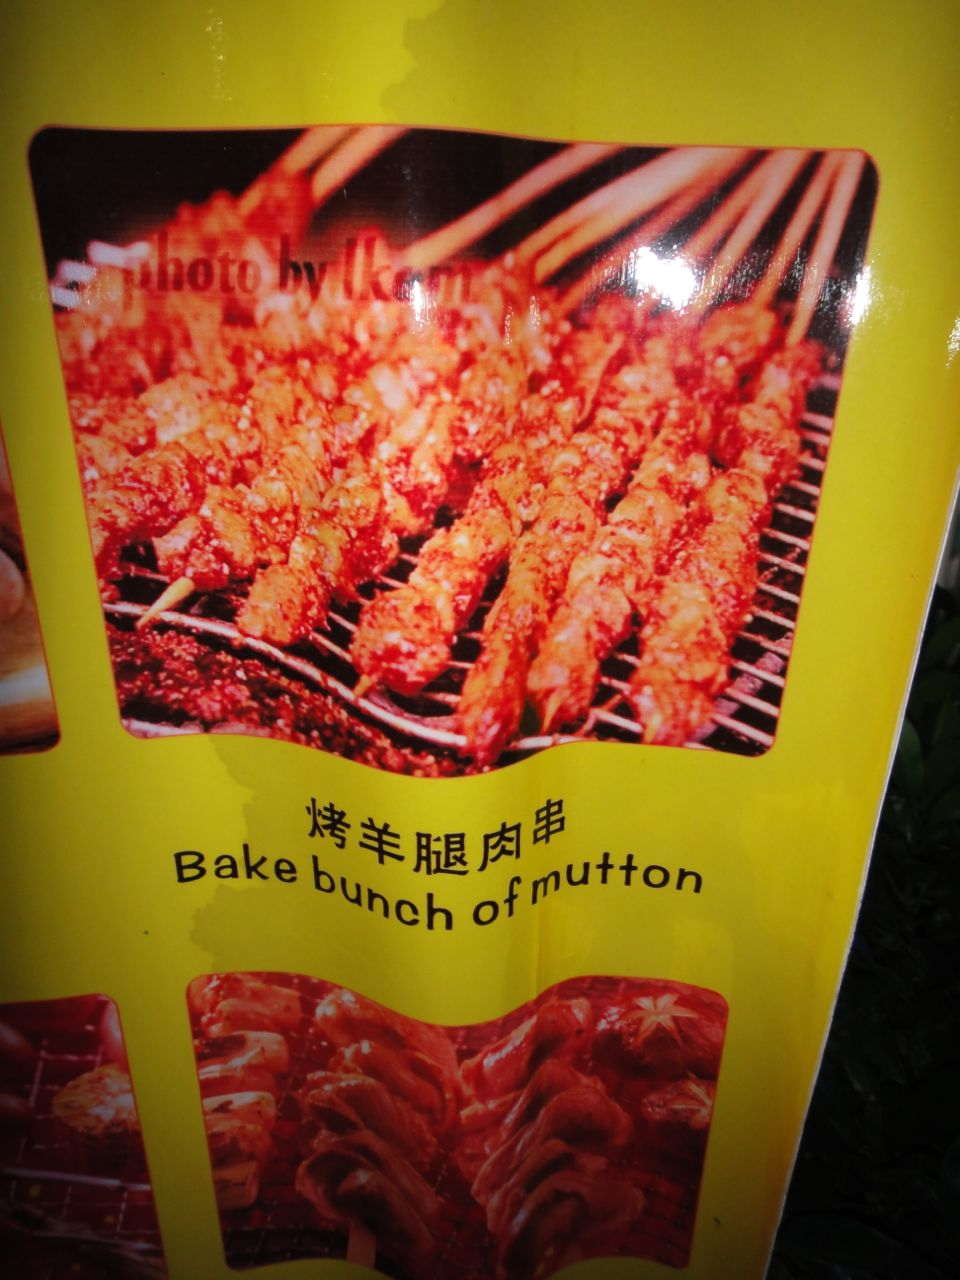 Beijing menu sign mutton